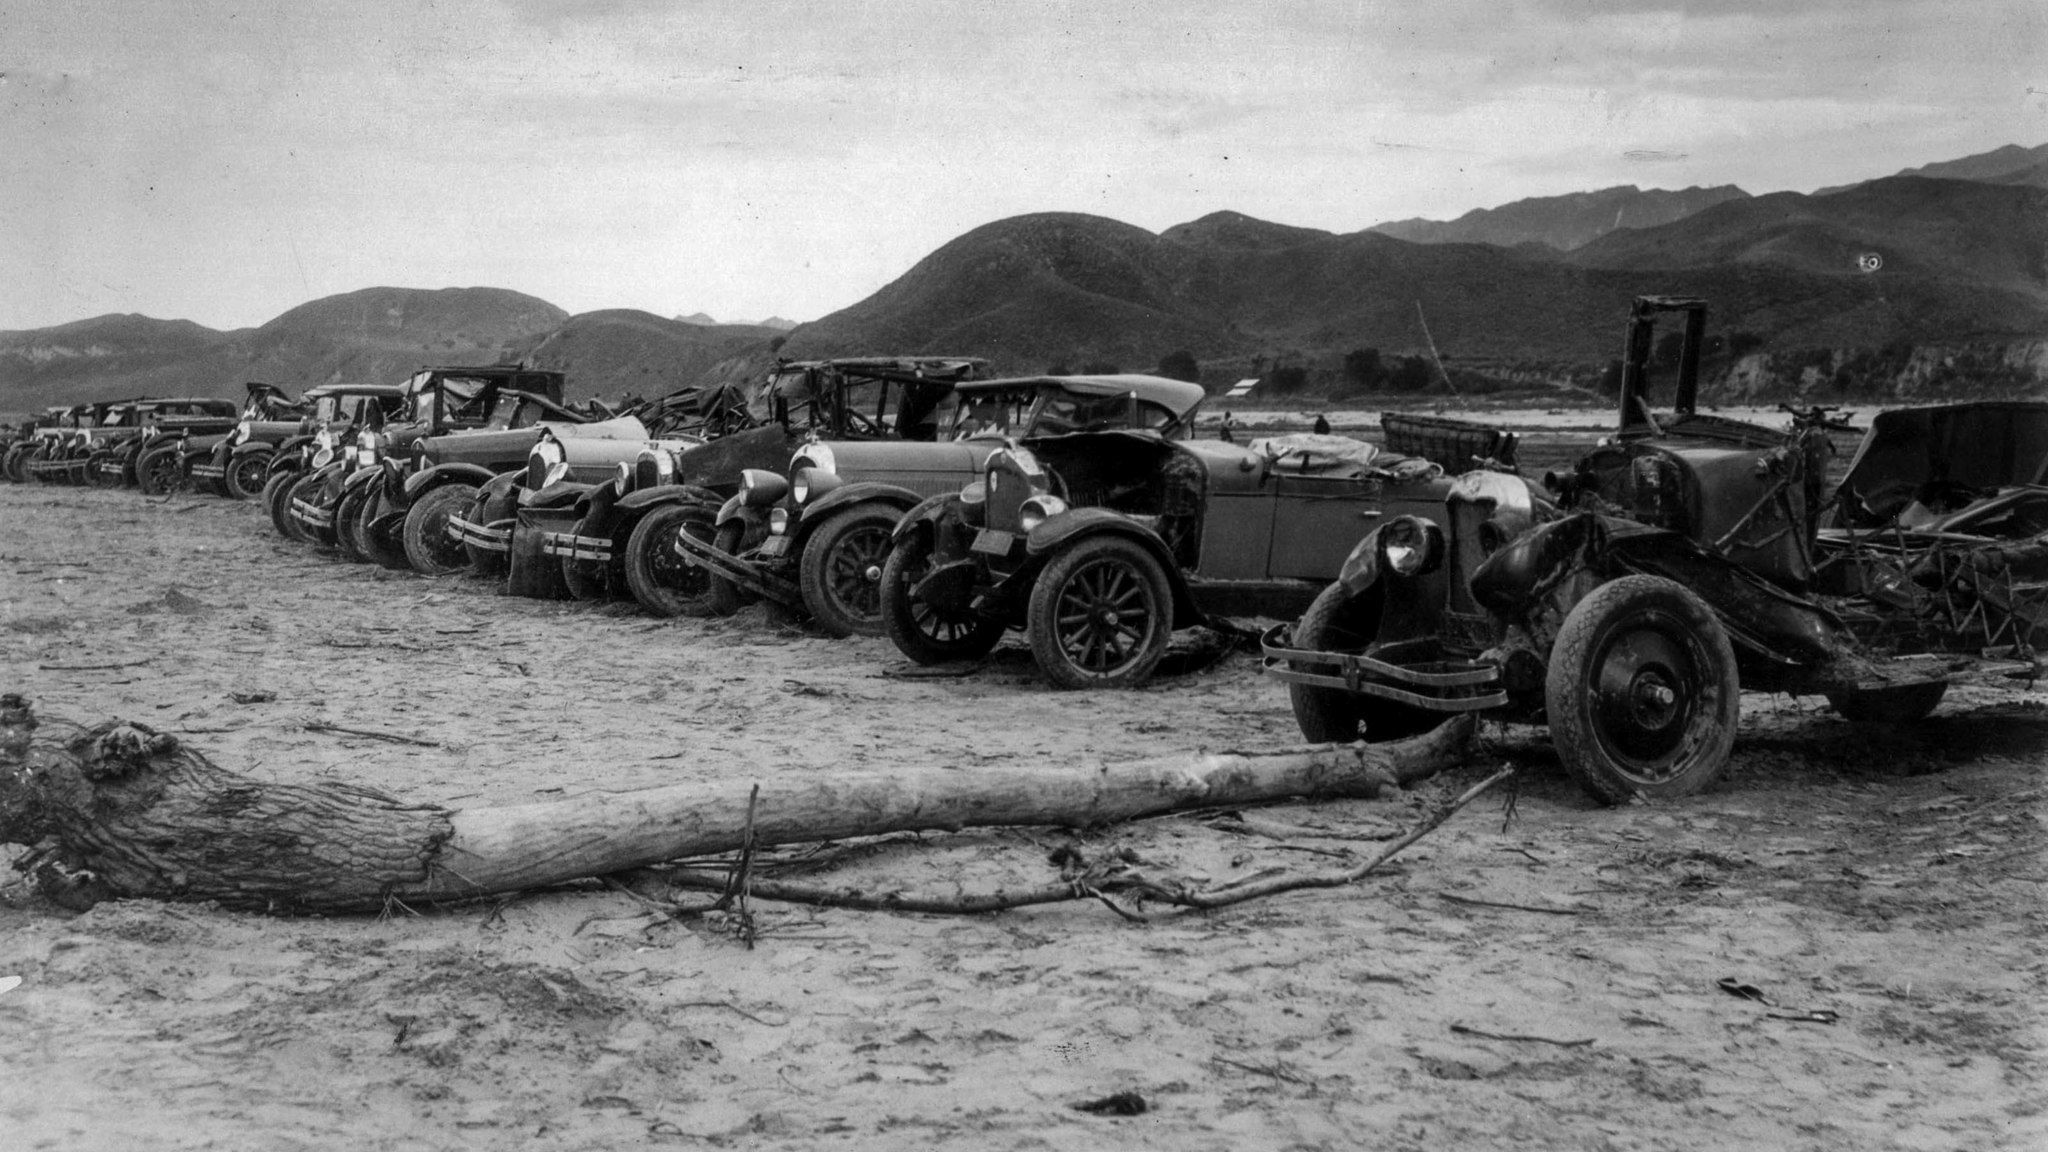 April 1928: Thirty-five automobiles were recoved at Power House No. 2. Nine survivors have claimed t